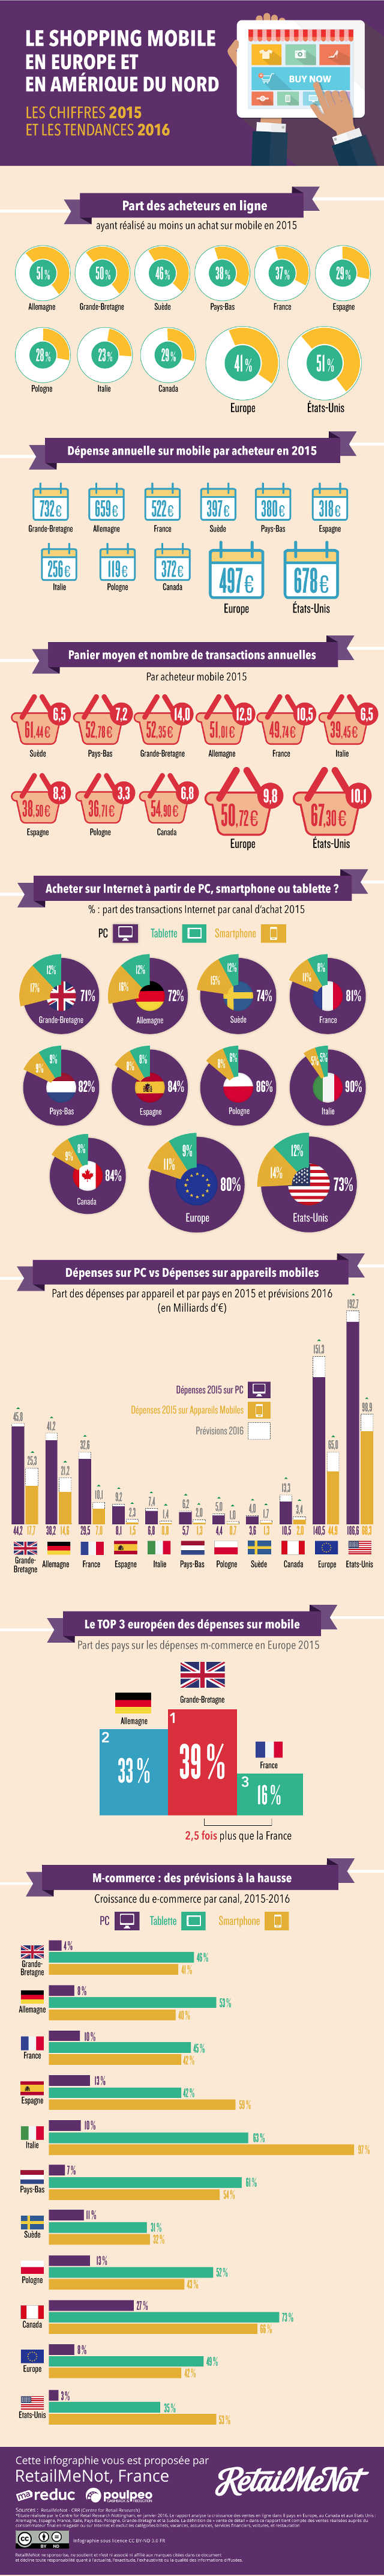 Report and grow for Mcommerce in 2015 for Europe and USA - Programmatic